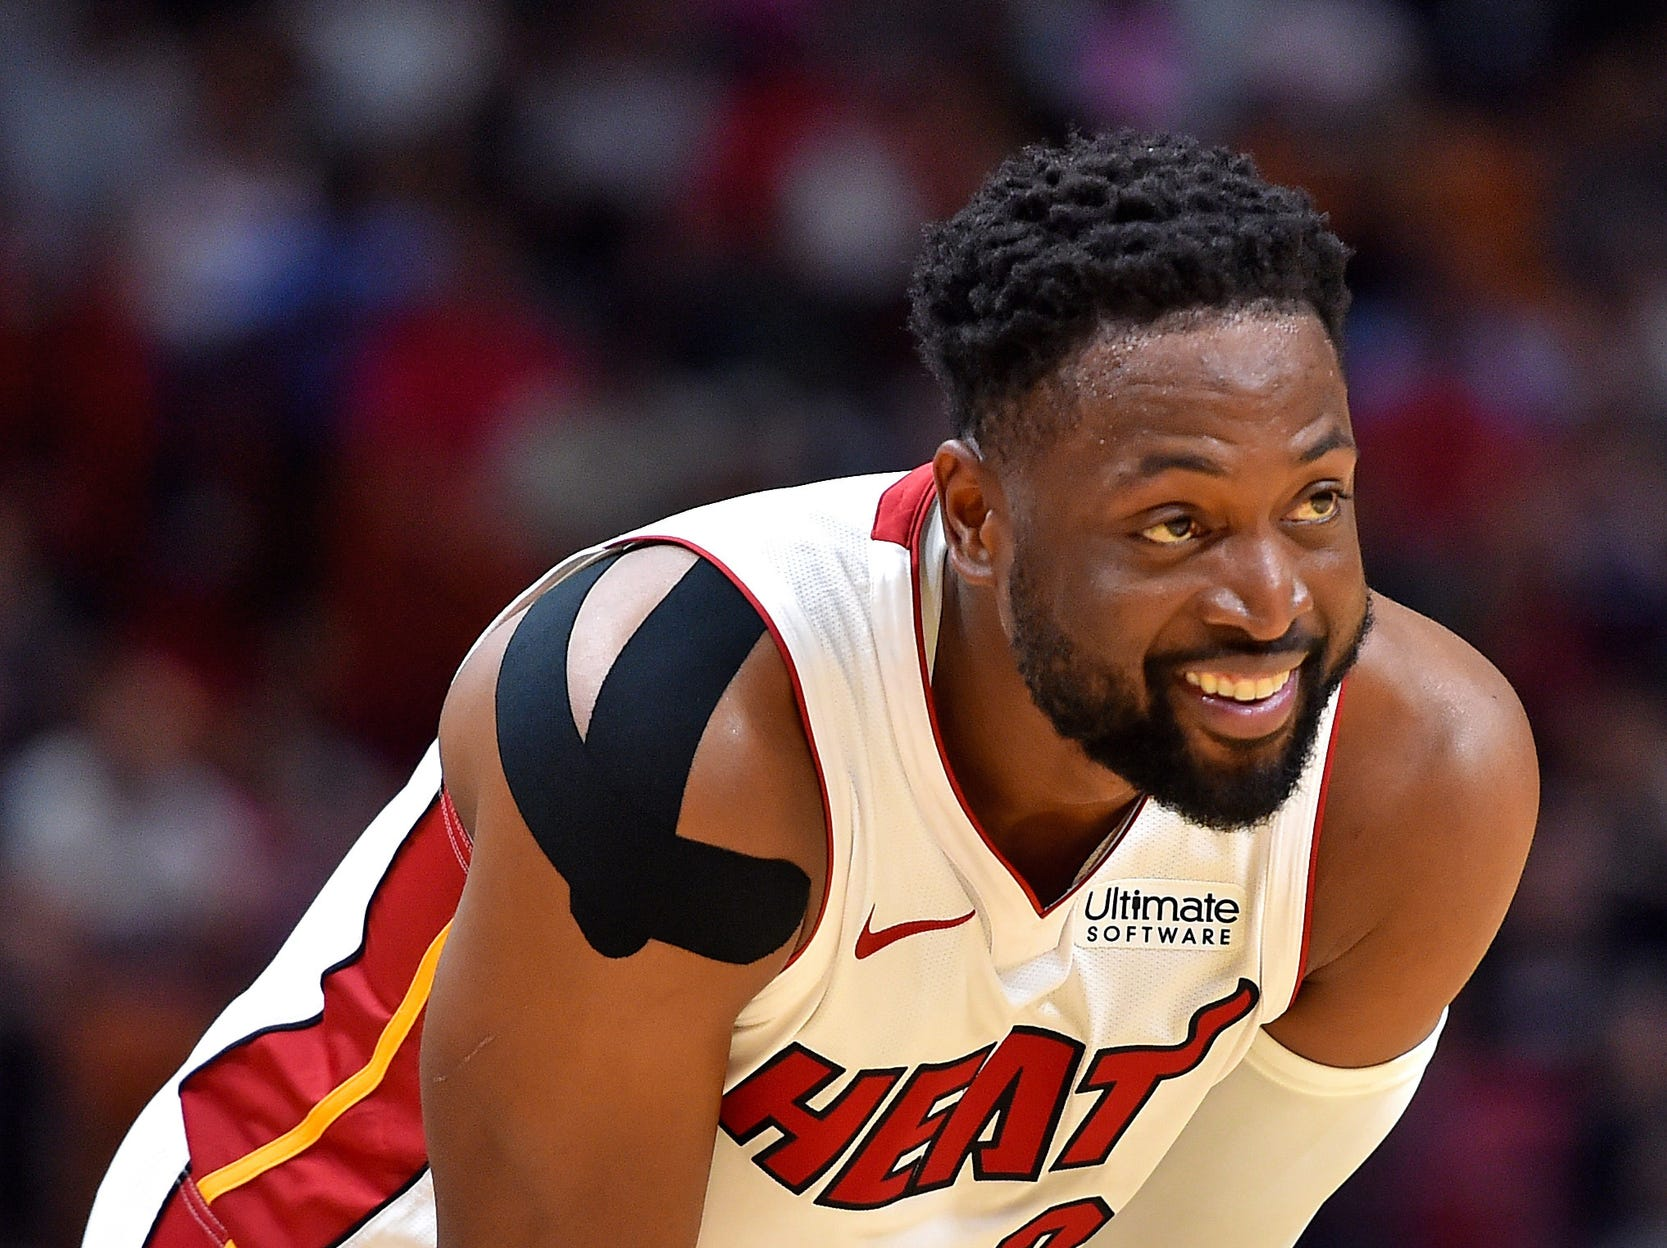 Miami Heat guard Dwyane Wade (3) smiles while taking a breather against the Detroit Pistons during the second half at American Airlines Arena on Wednesday, March 13, 2019.